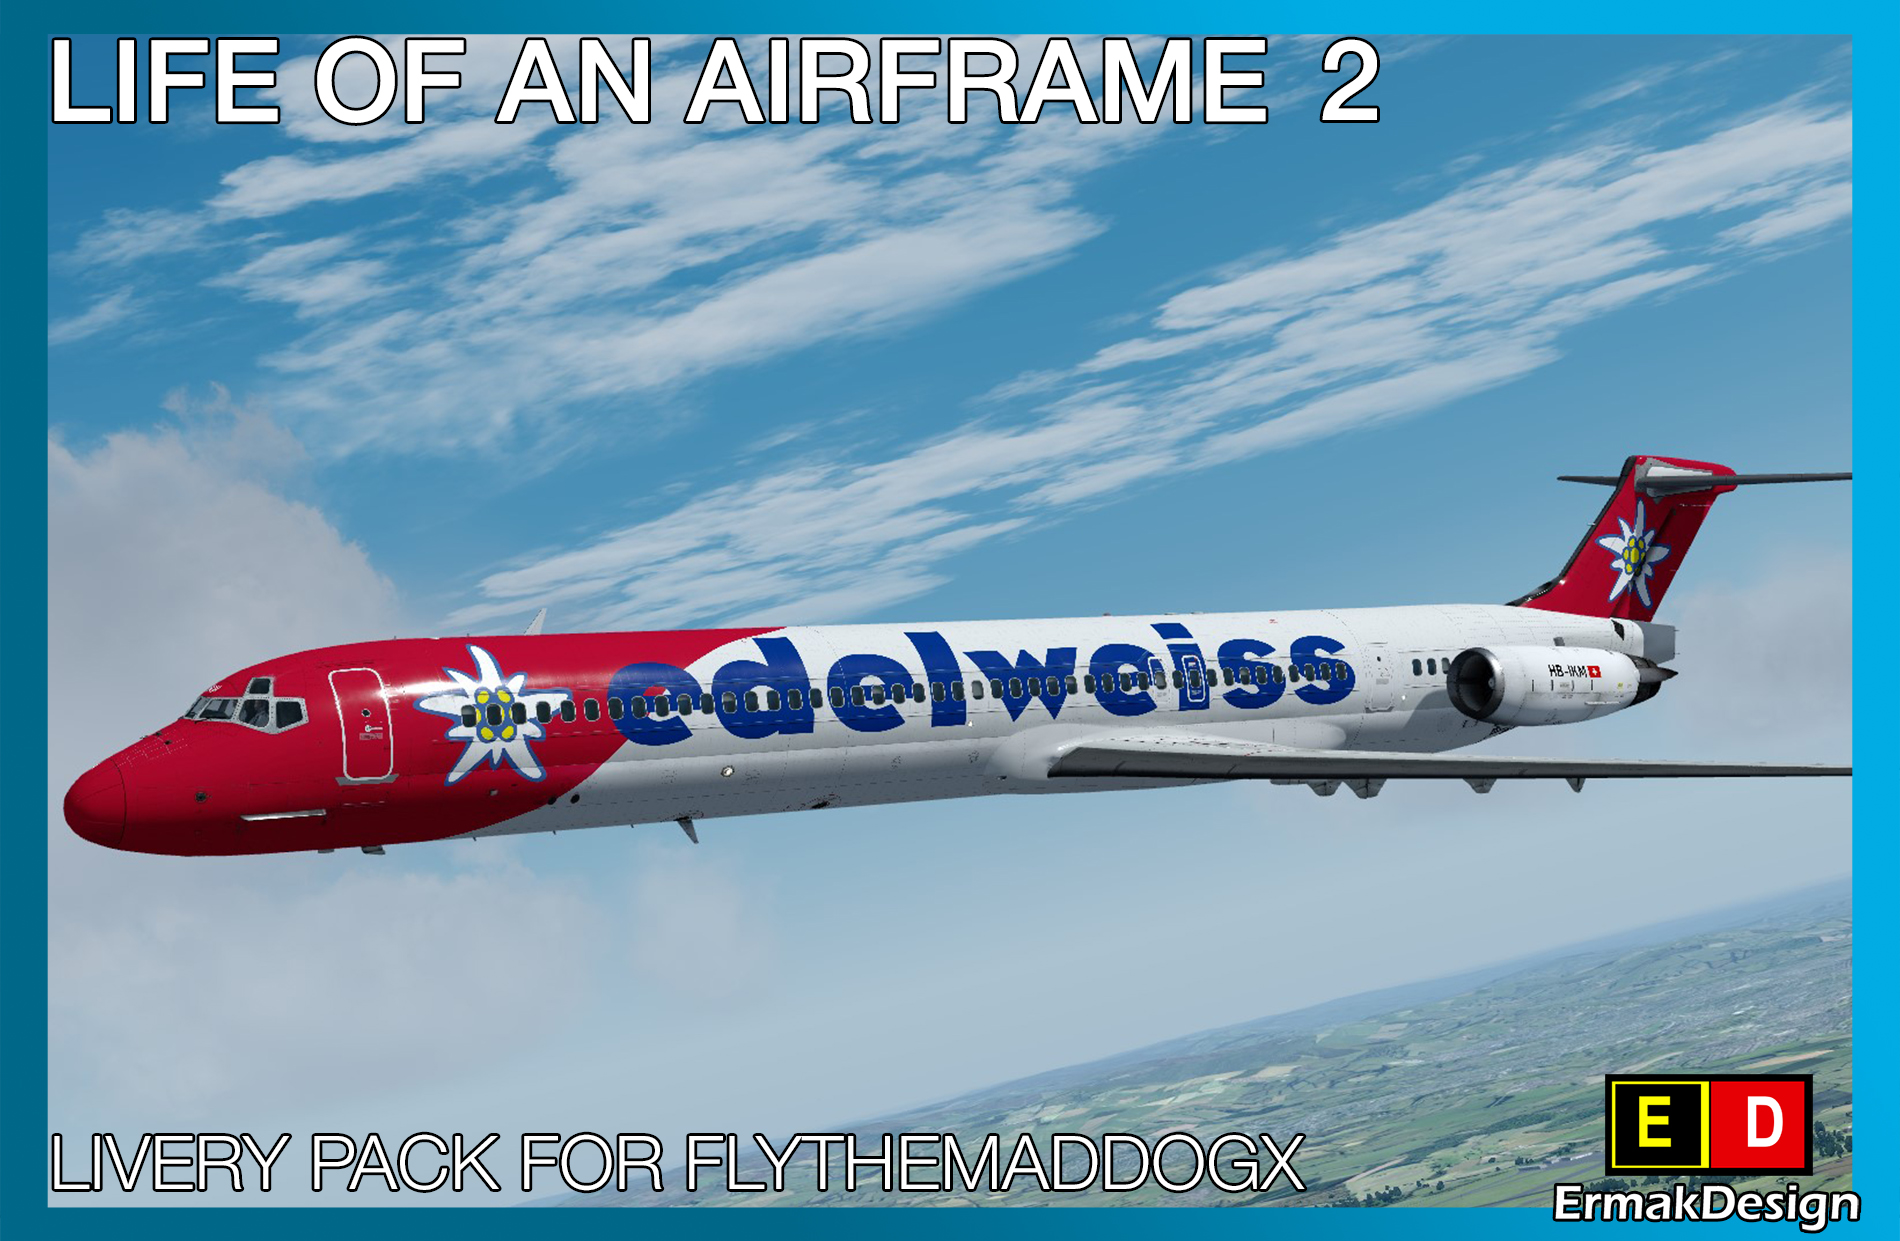 ERMAKDESIGN - LIFE OF AN AIRFRAME LIVERY PACK 2 FOR FLYTHEMADDOGX